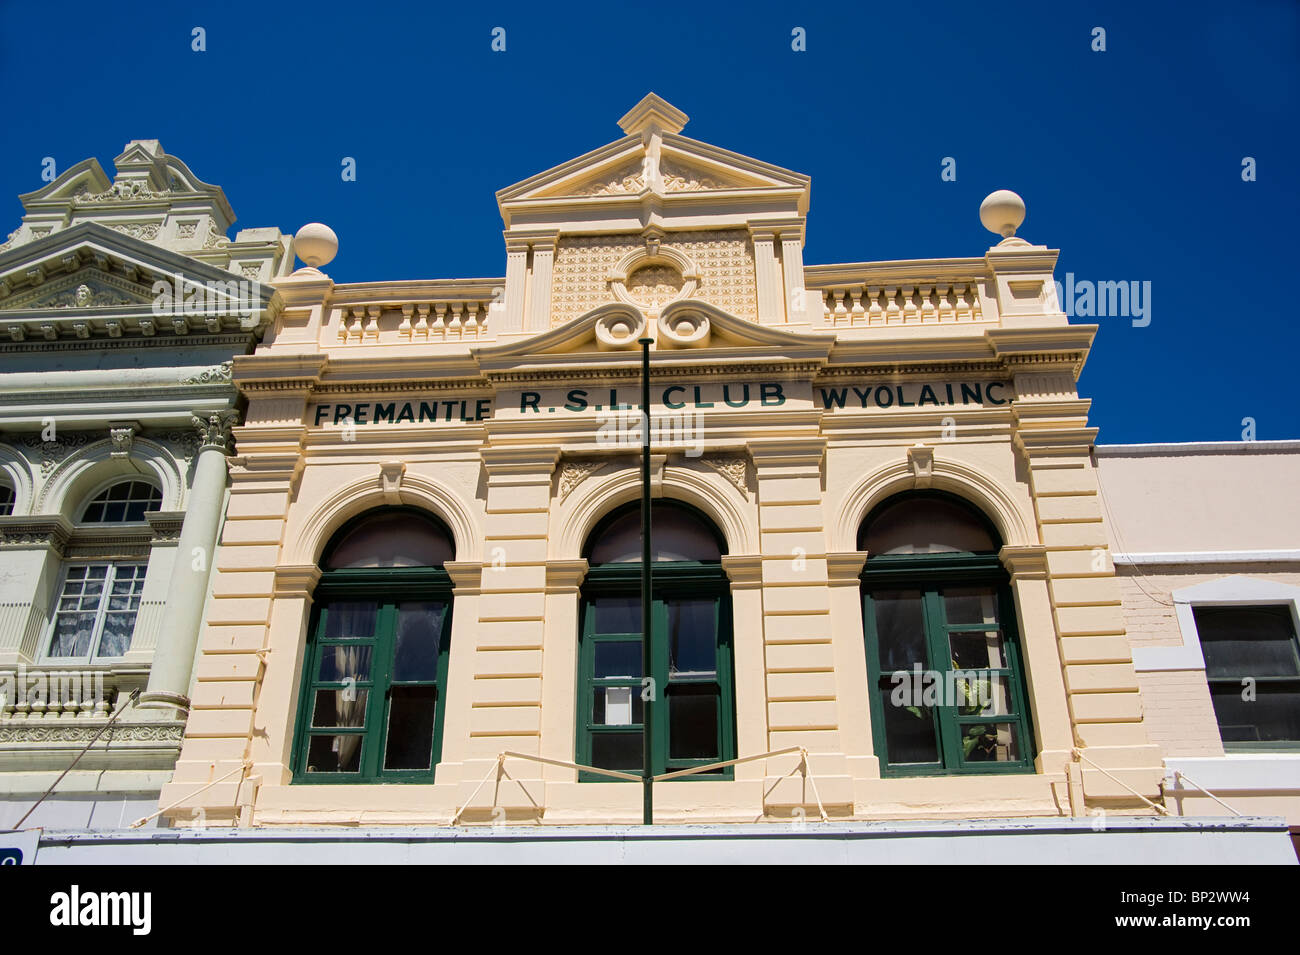 One of the old buildings in Fremantle, Australia.  The Returned and Services League Club building, Fremantle. - Stock Image